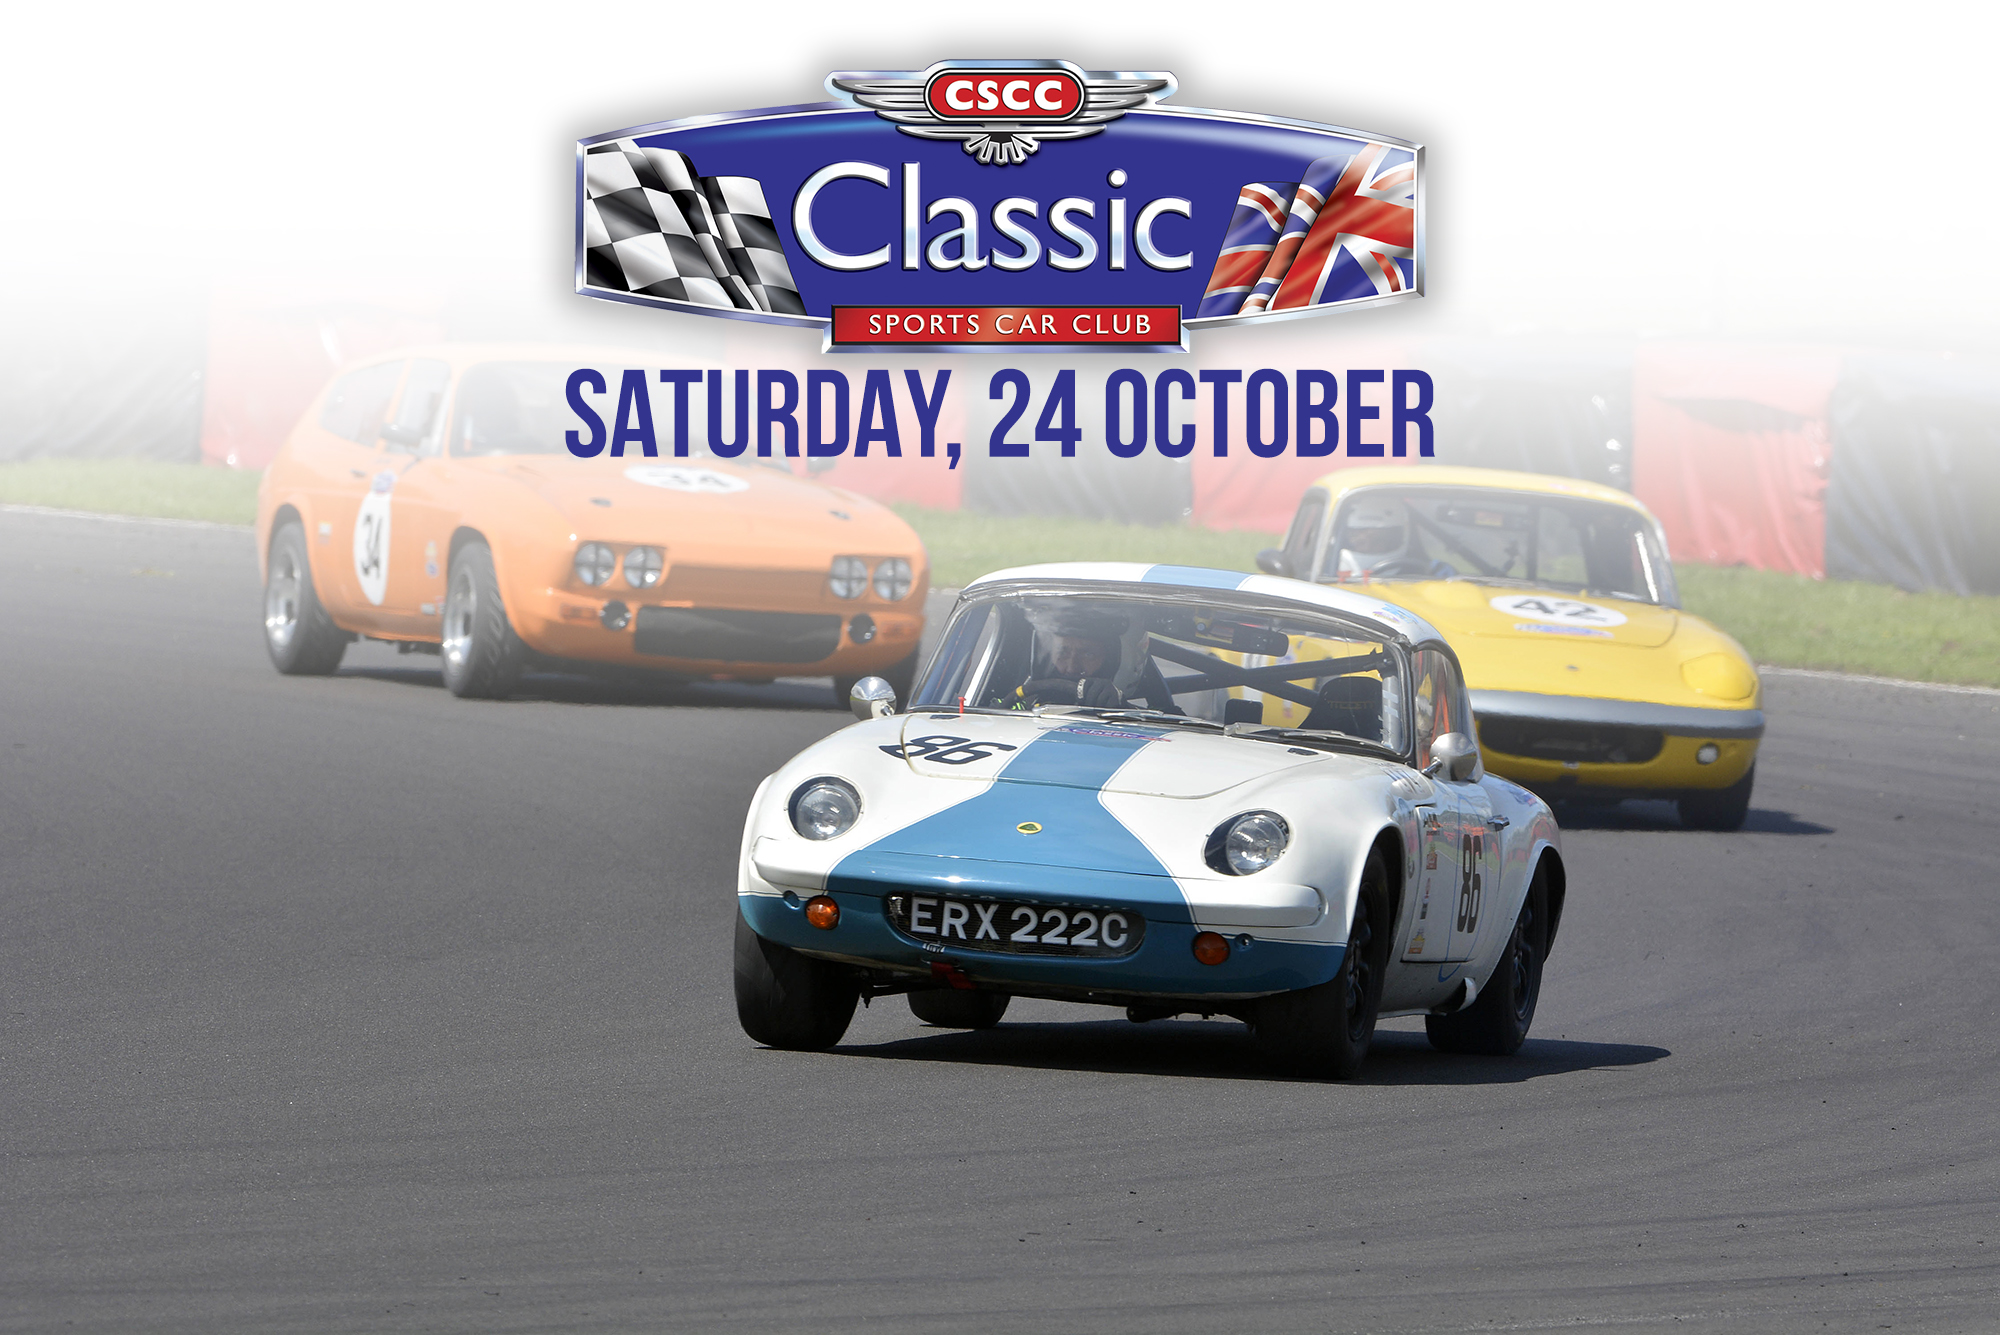 CLASSIC SPORTS CAR CLUB RACE DAY ANNOUNCED FOR 24 OCTOBER